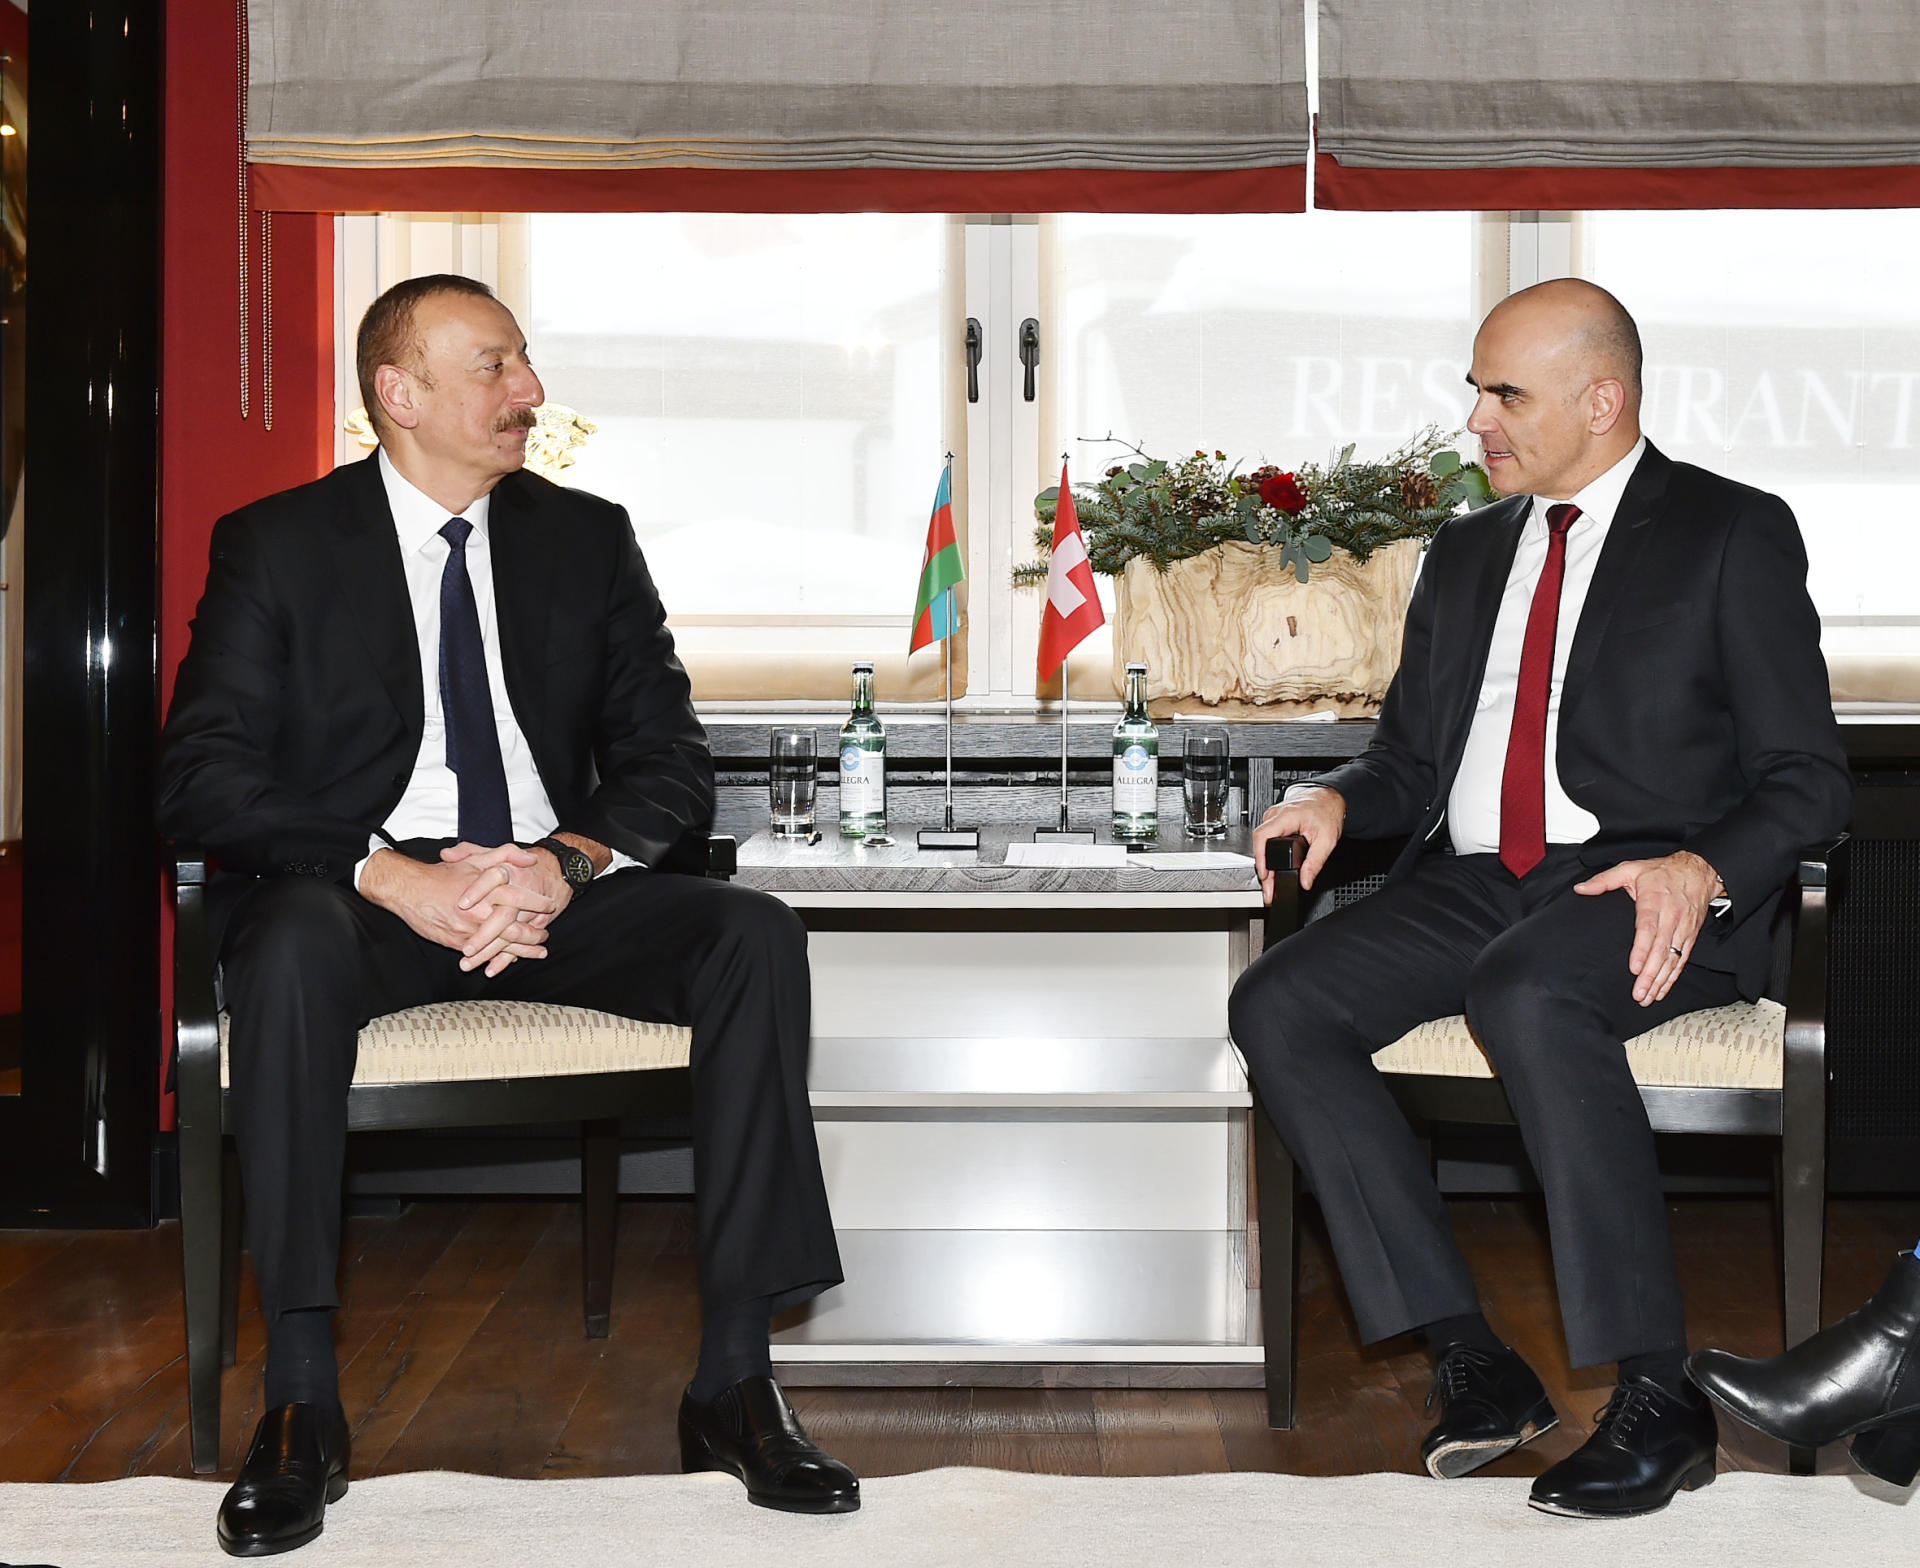 President Aliyev meets with Swiss president in Davos (PHOTO)